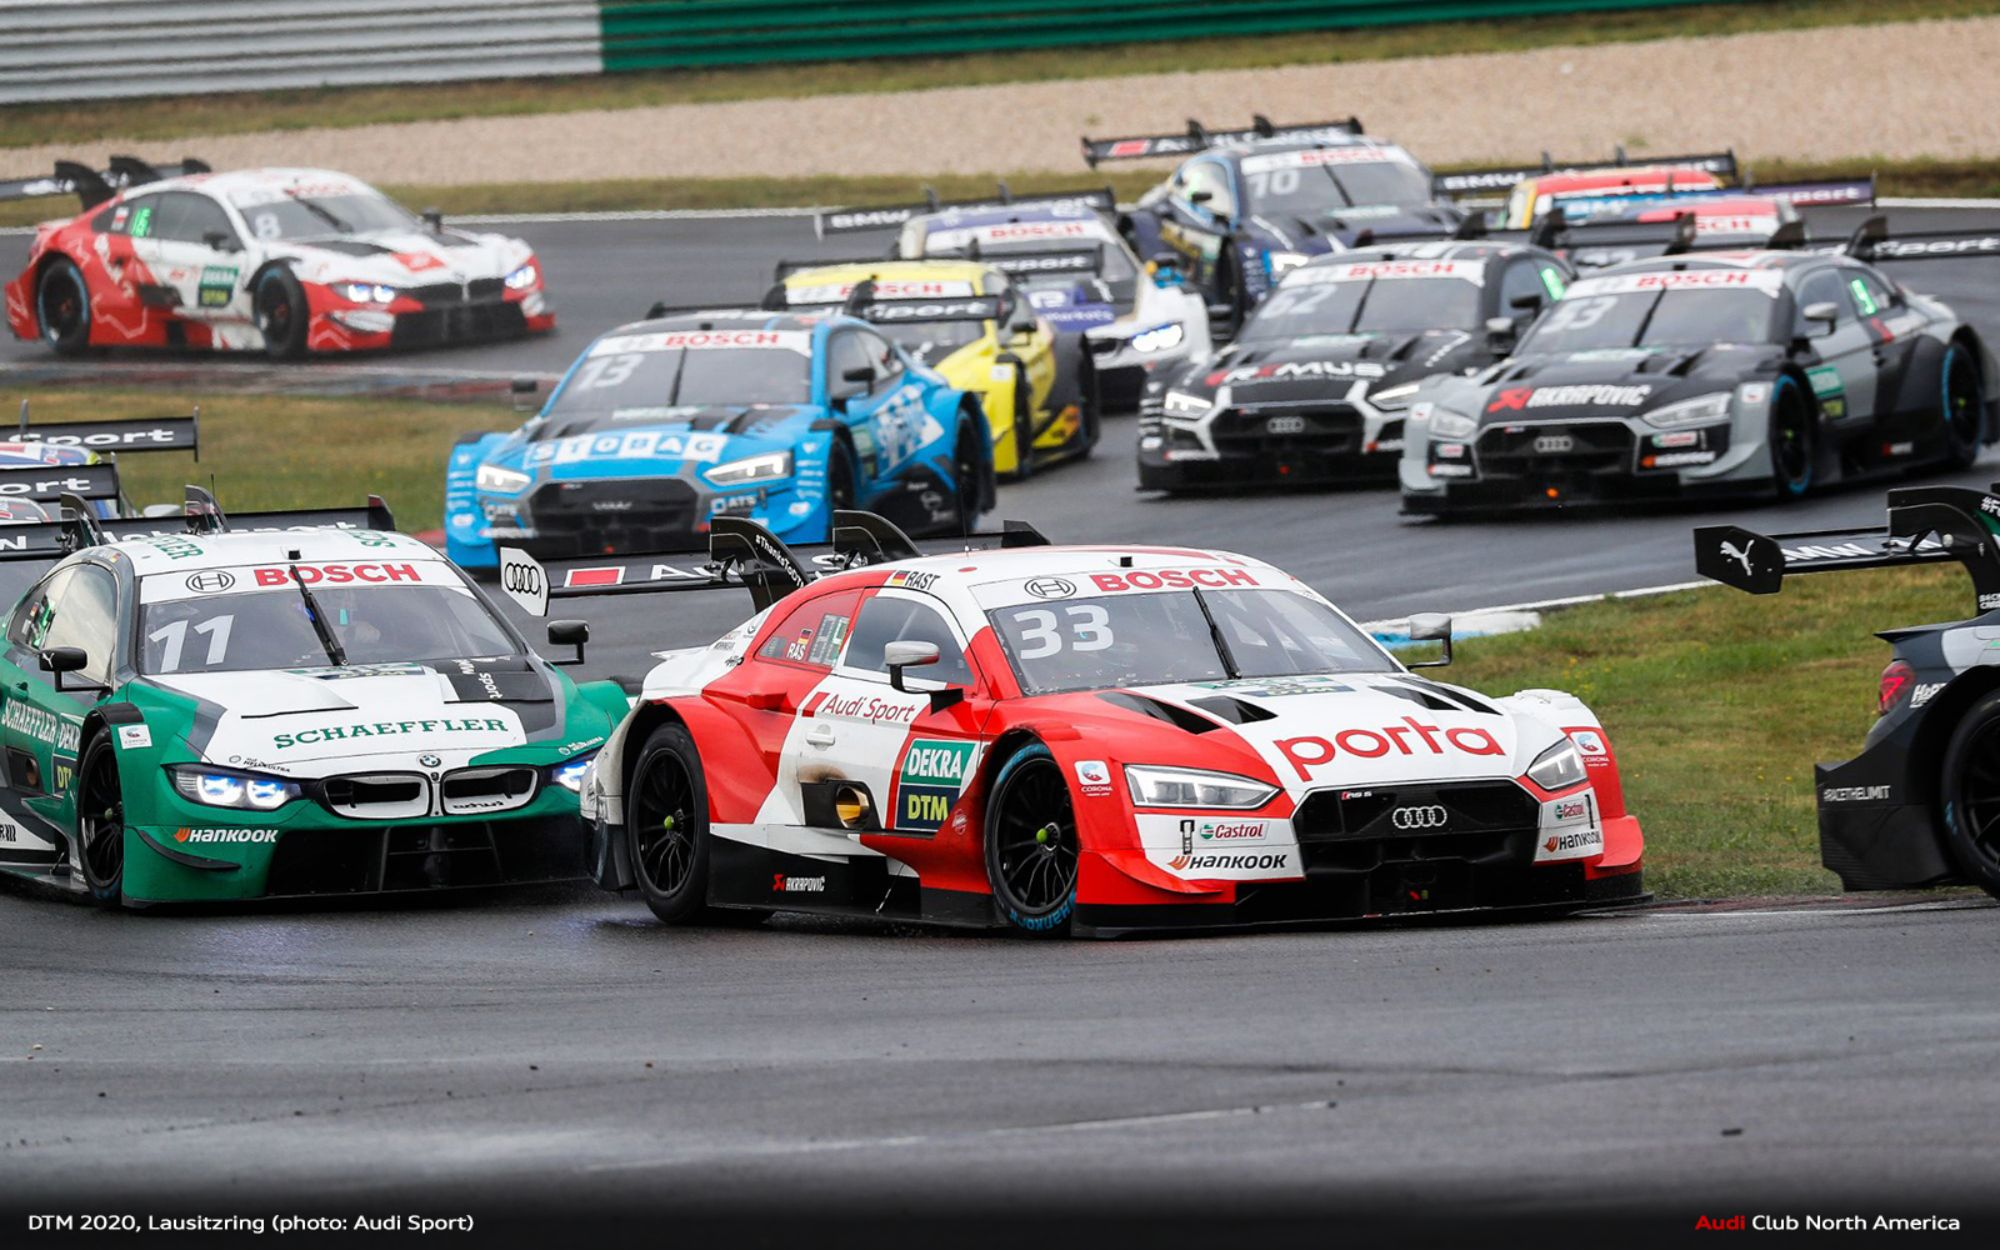 René Rast Wins in Audi Podium Sweep at Lausitzring